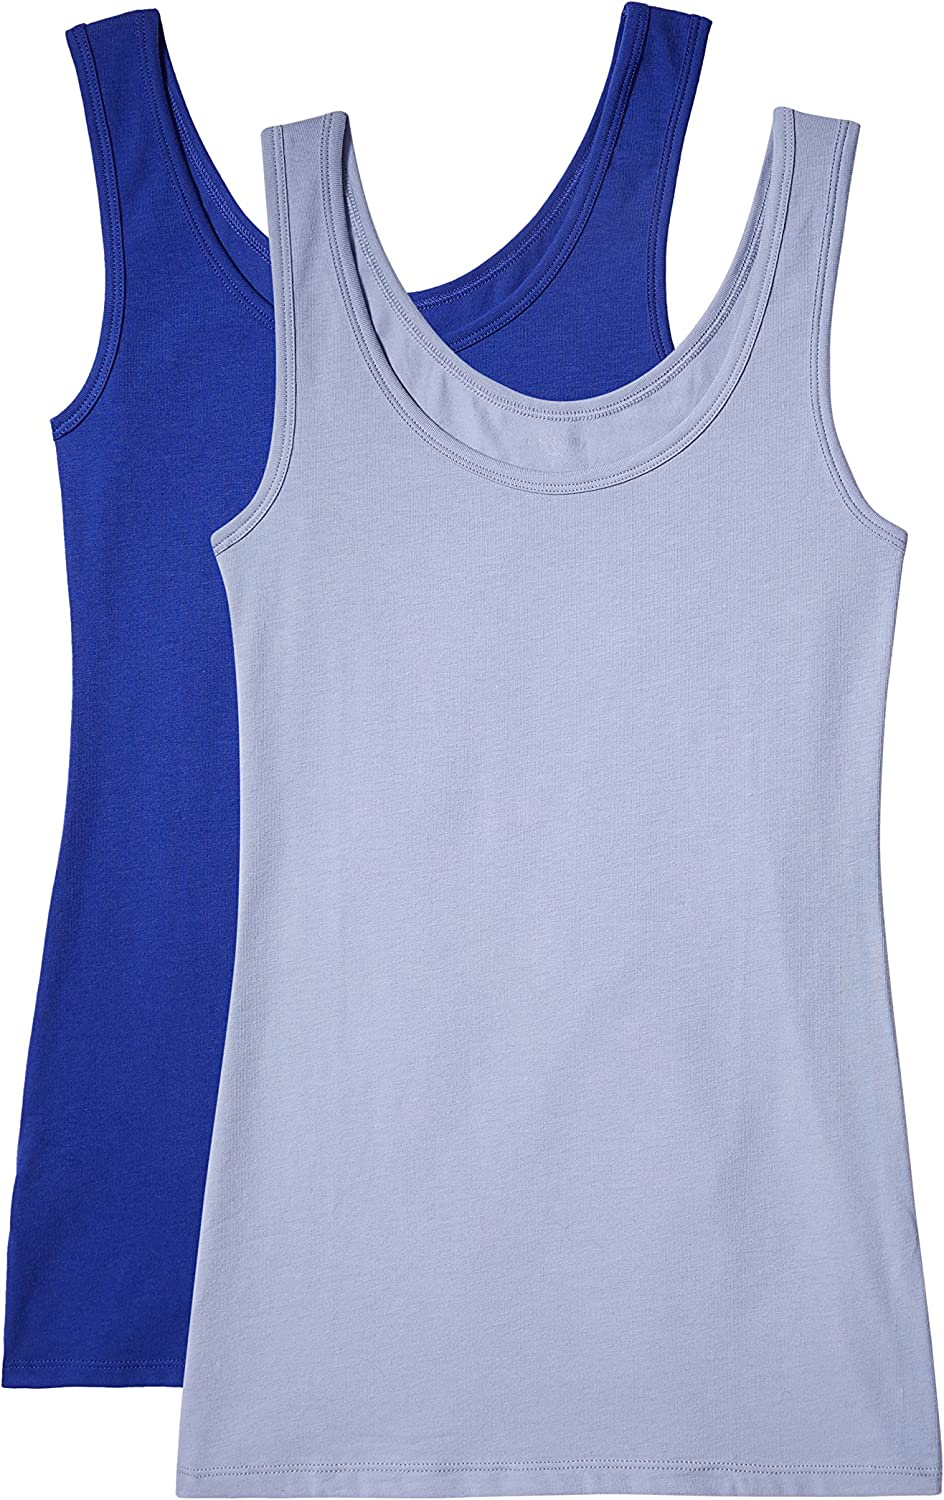 Pack of 2 Iris /& Lilly Womens Cotton Tank Top